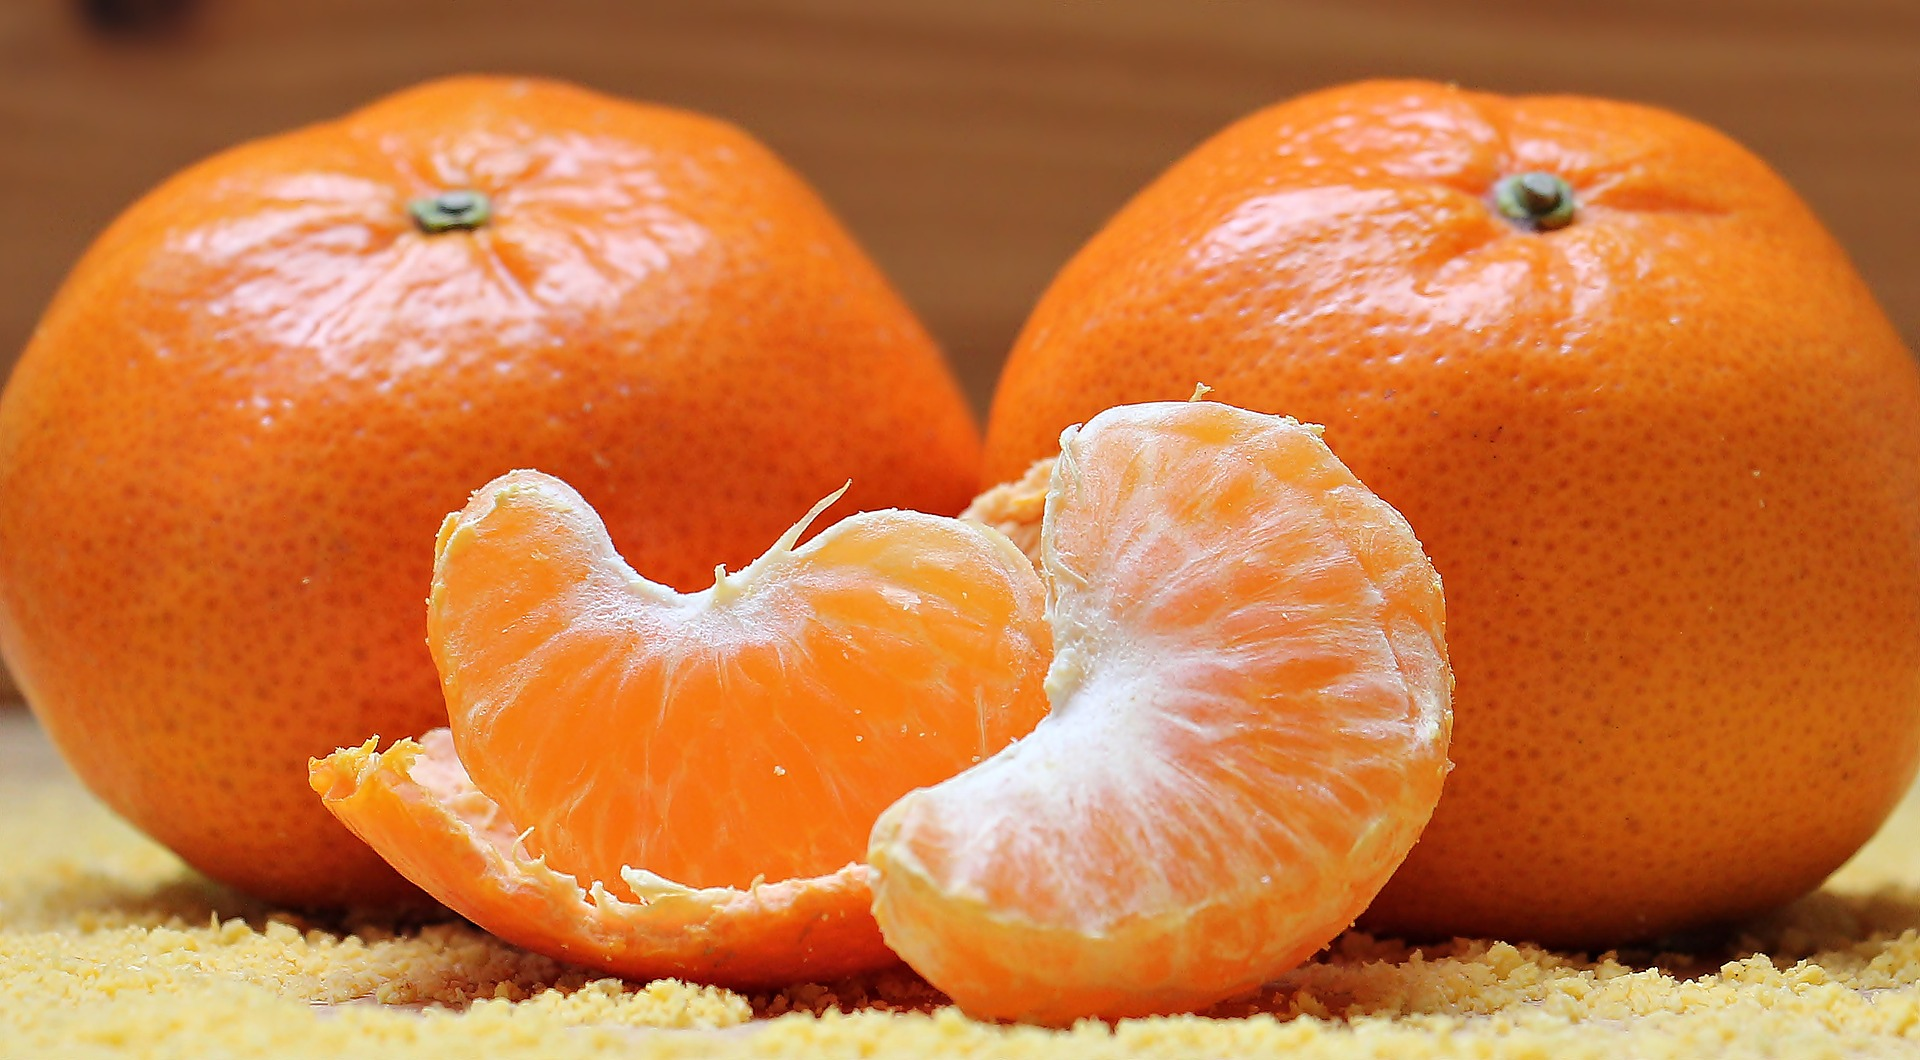 Close-up photo of two tangerines side-by-side, and two segments of a tangerine in the middle of them